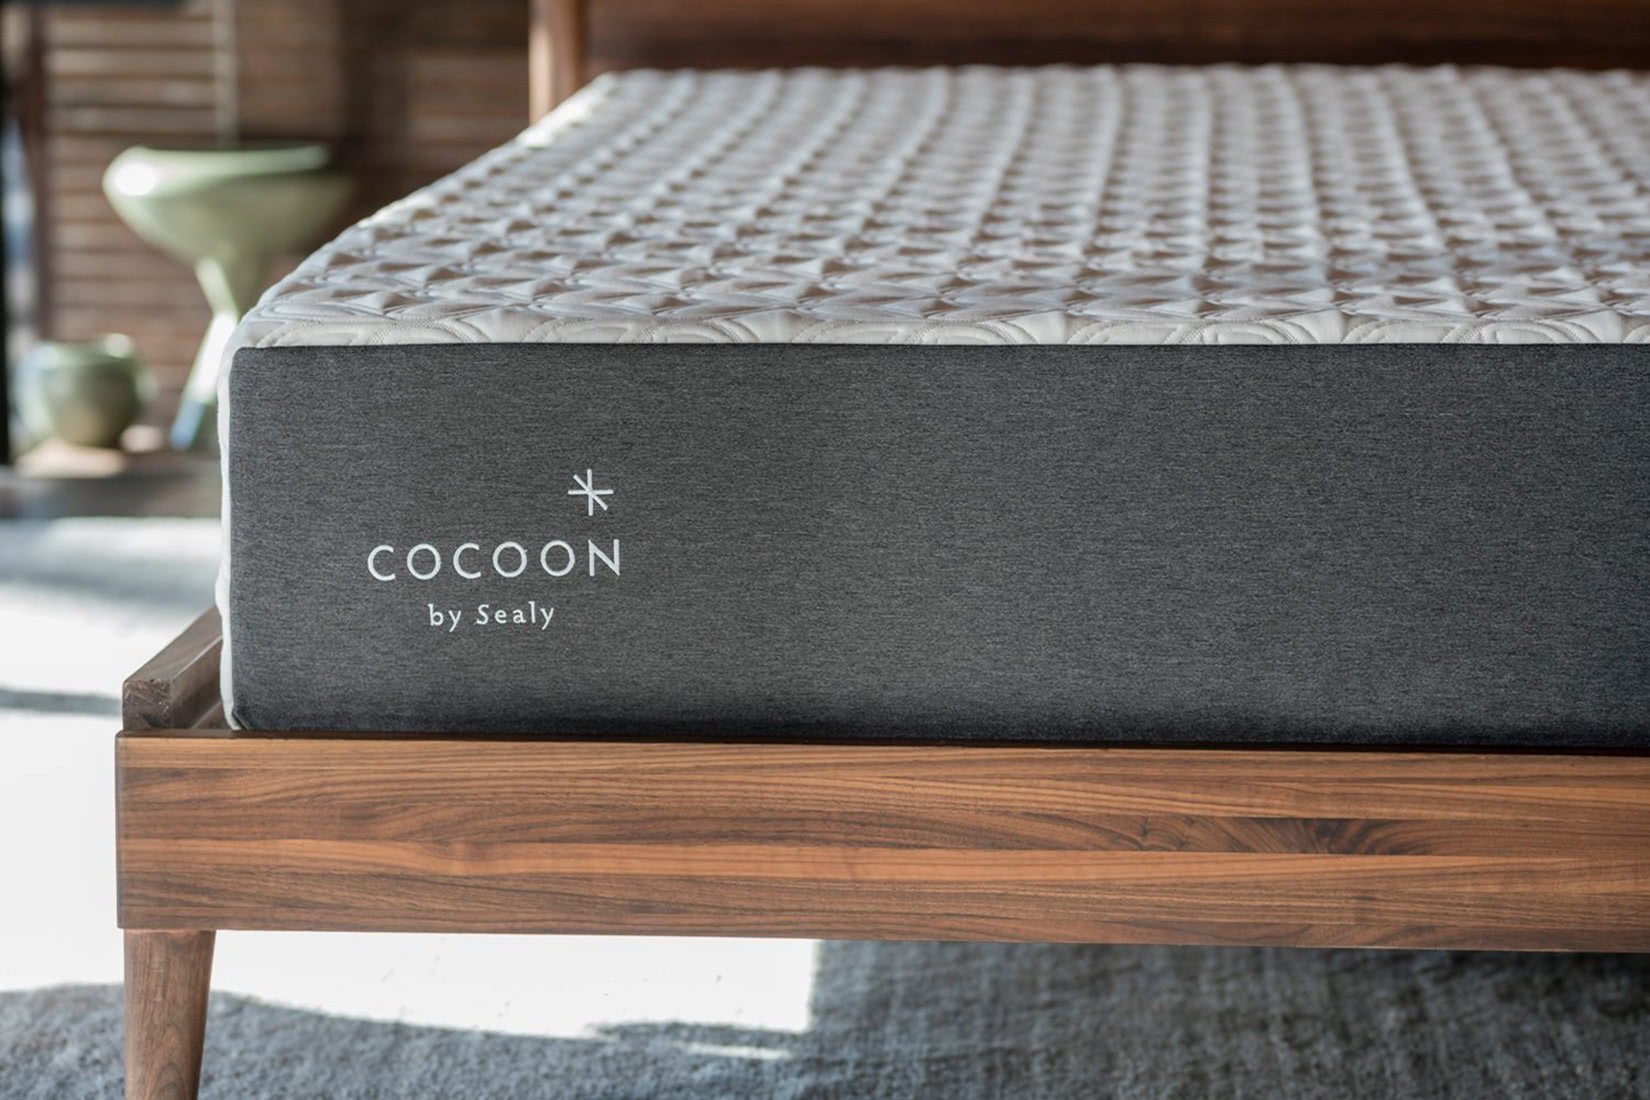 cocoon by sealy chill mattress review - Luxe Digital